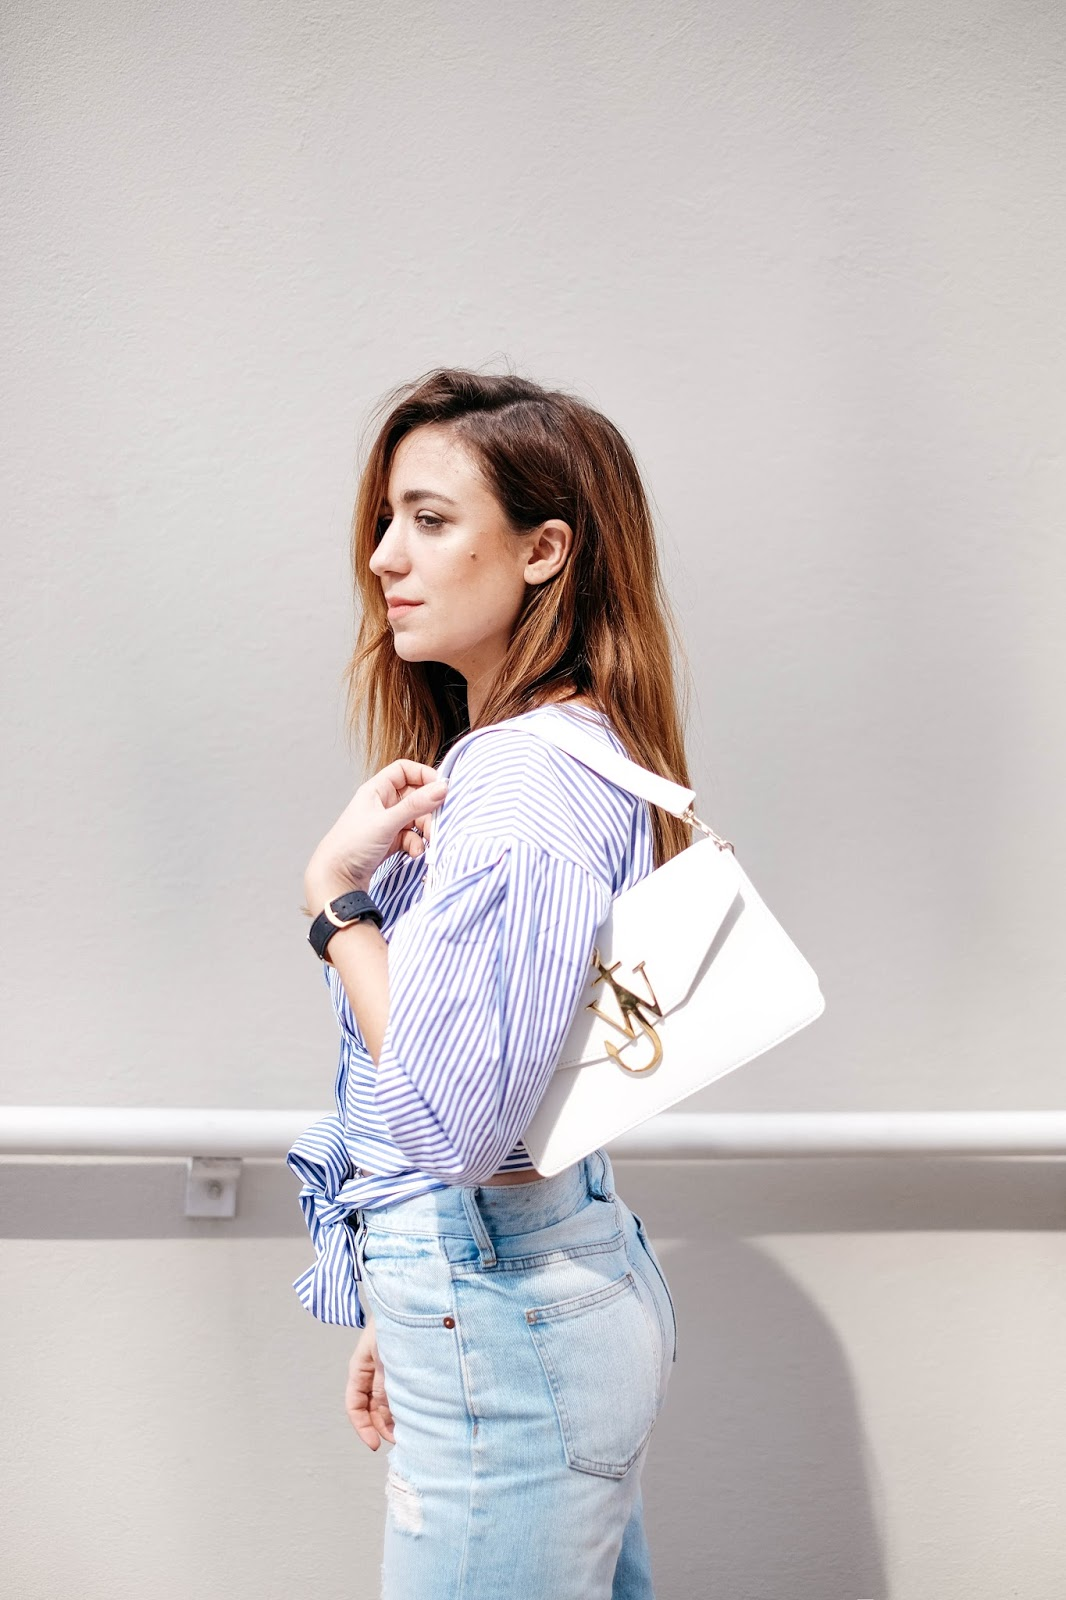 distressed jeans, madewell jeans, poplin blouse, striped shirt, summer, outfit, inspiration, blog, blogger, style, fashion, outfit ideas, JOA, loeffler randall, ruffle sandals, vera sandals